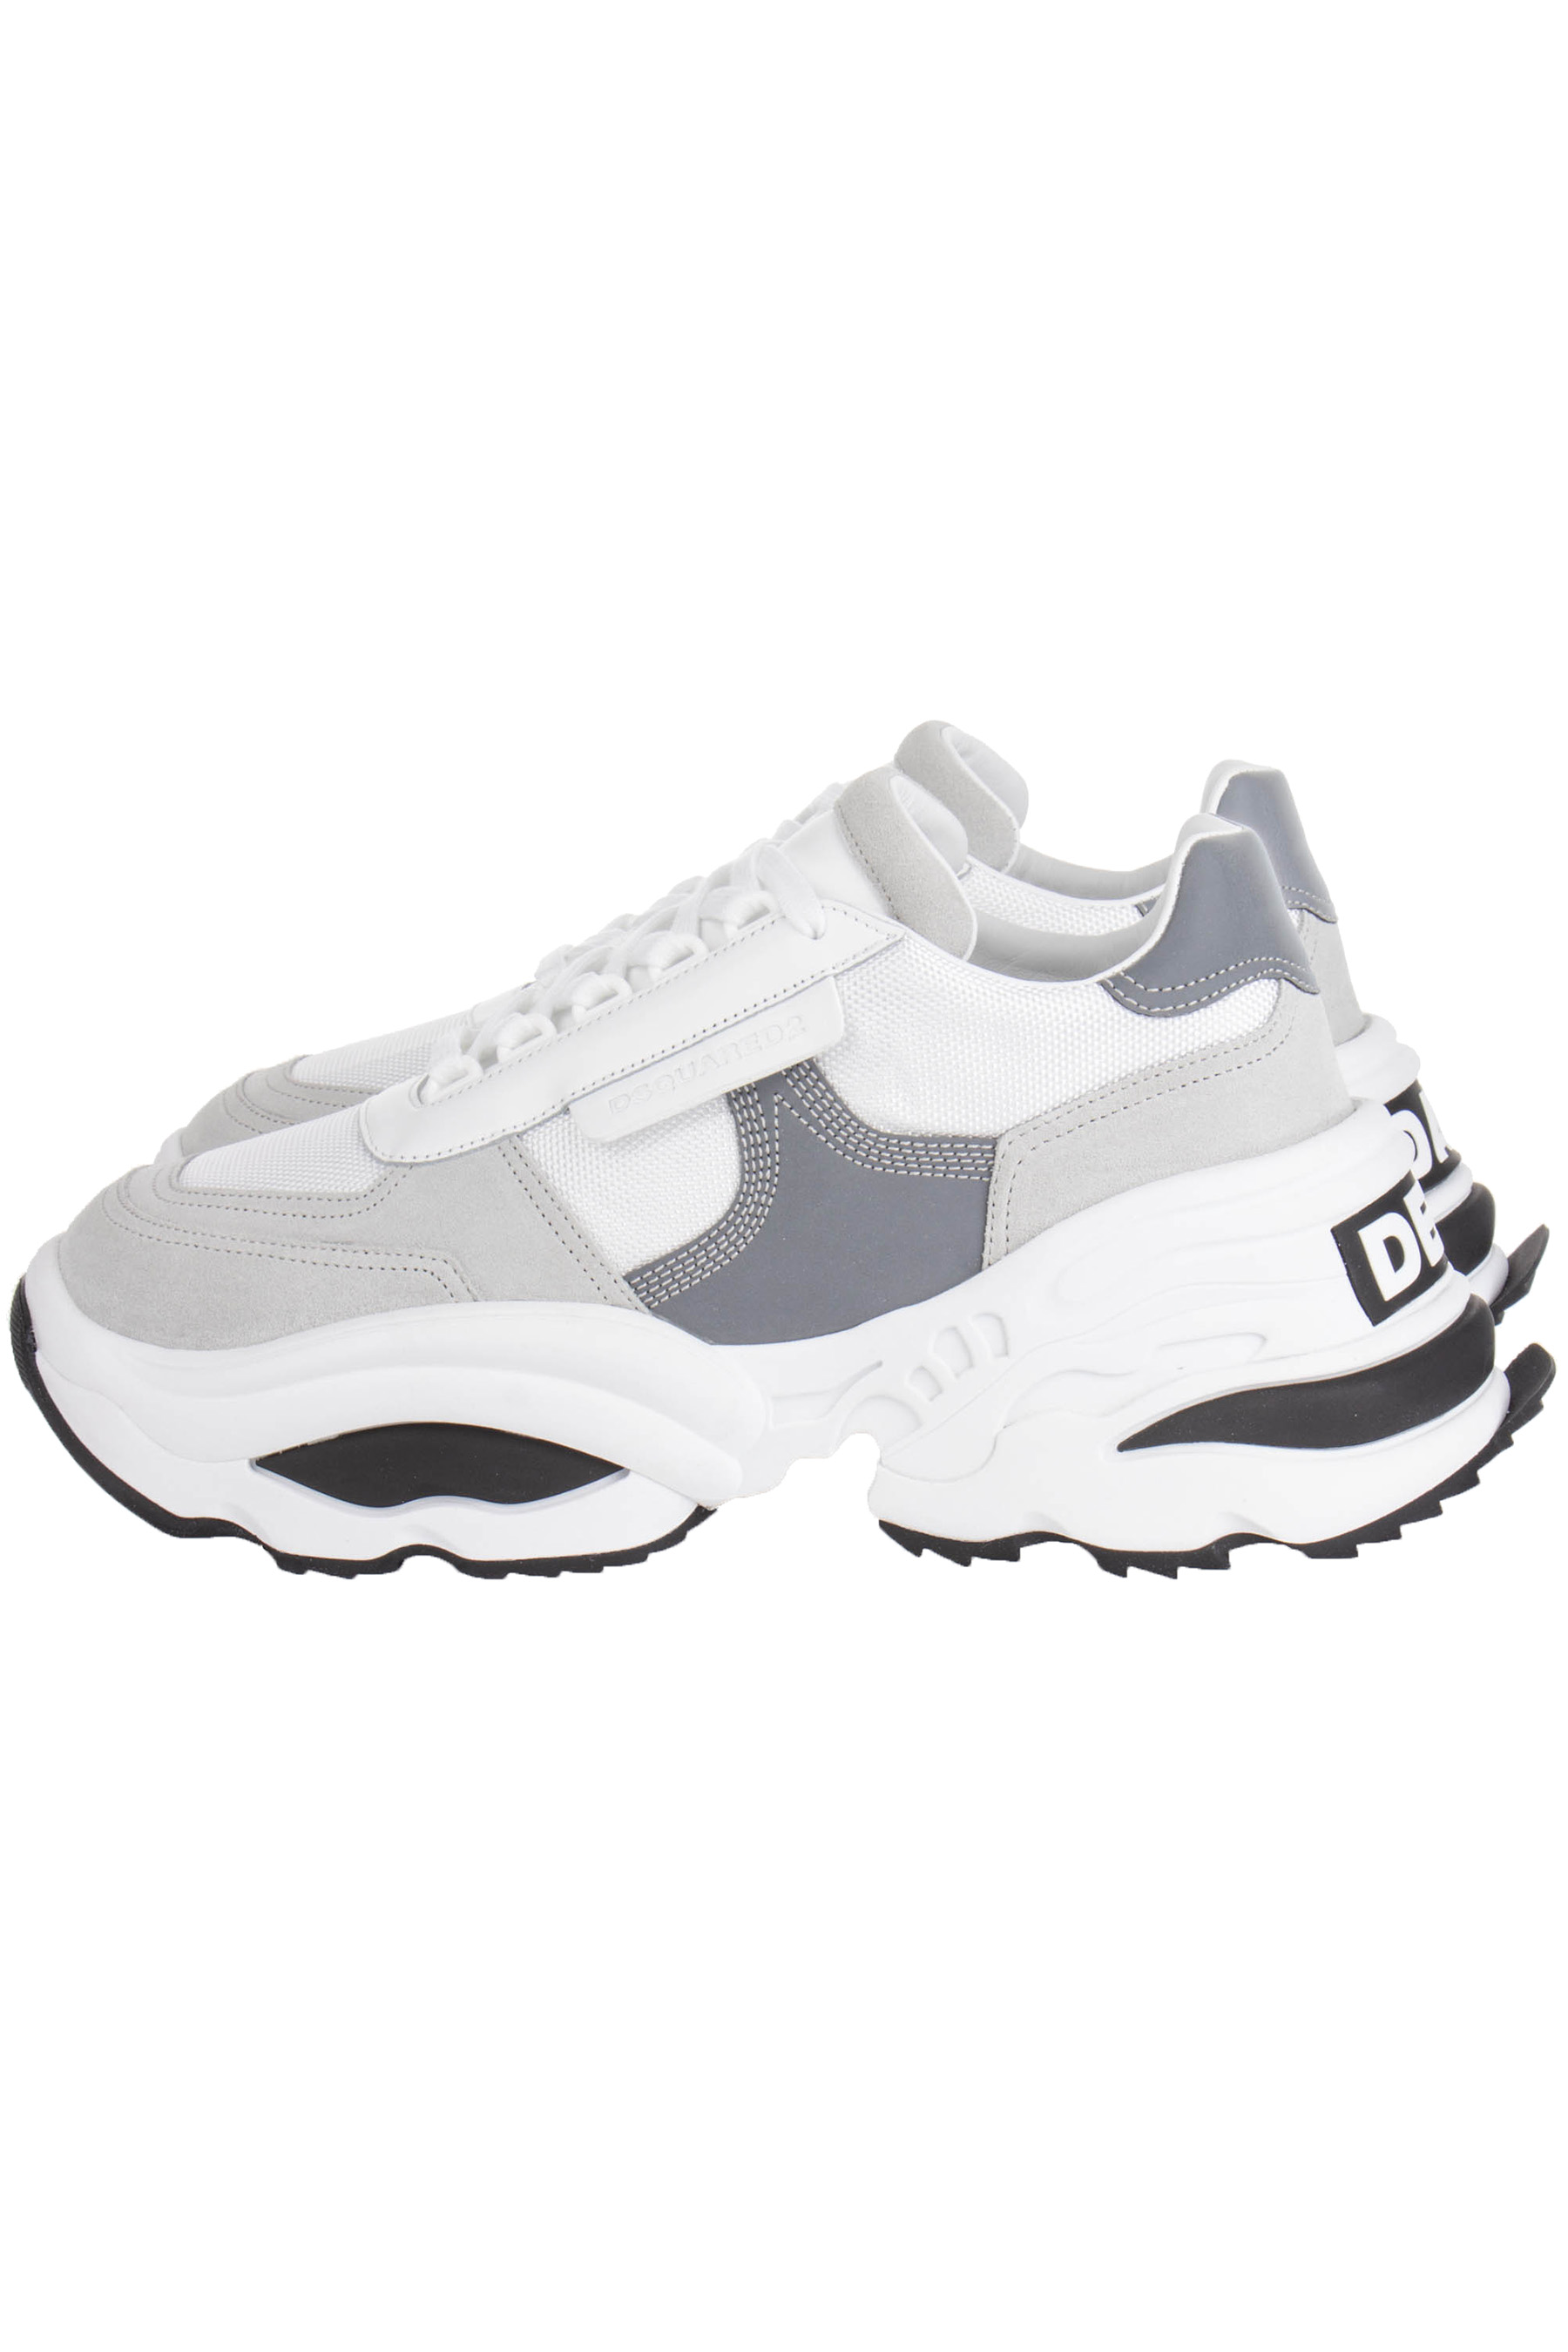 cheap for discount 4e28a f2bb5 DSQUARED2 Sneakers The Giant Hike